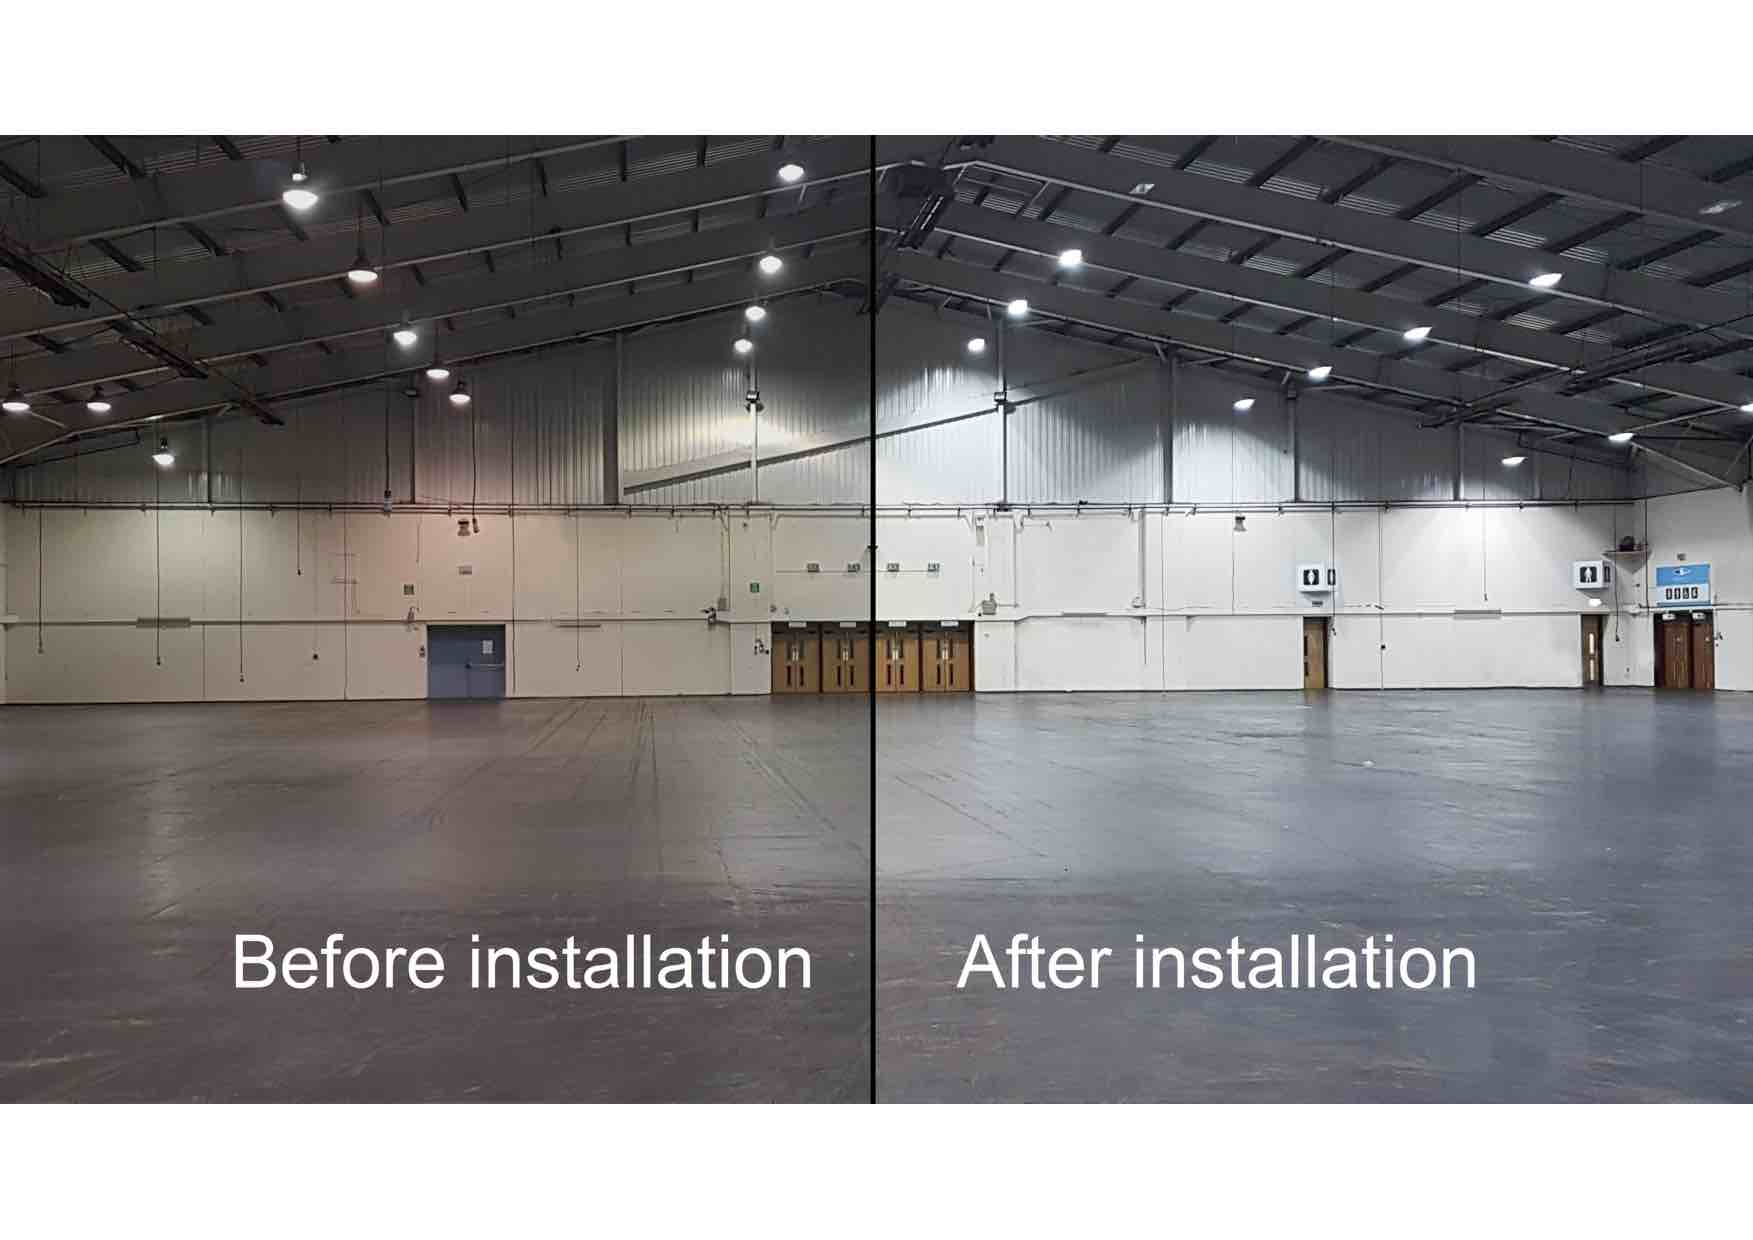 led lighting before & after